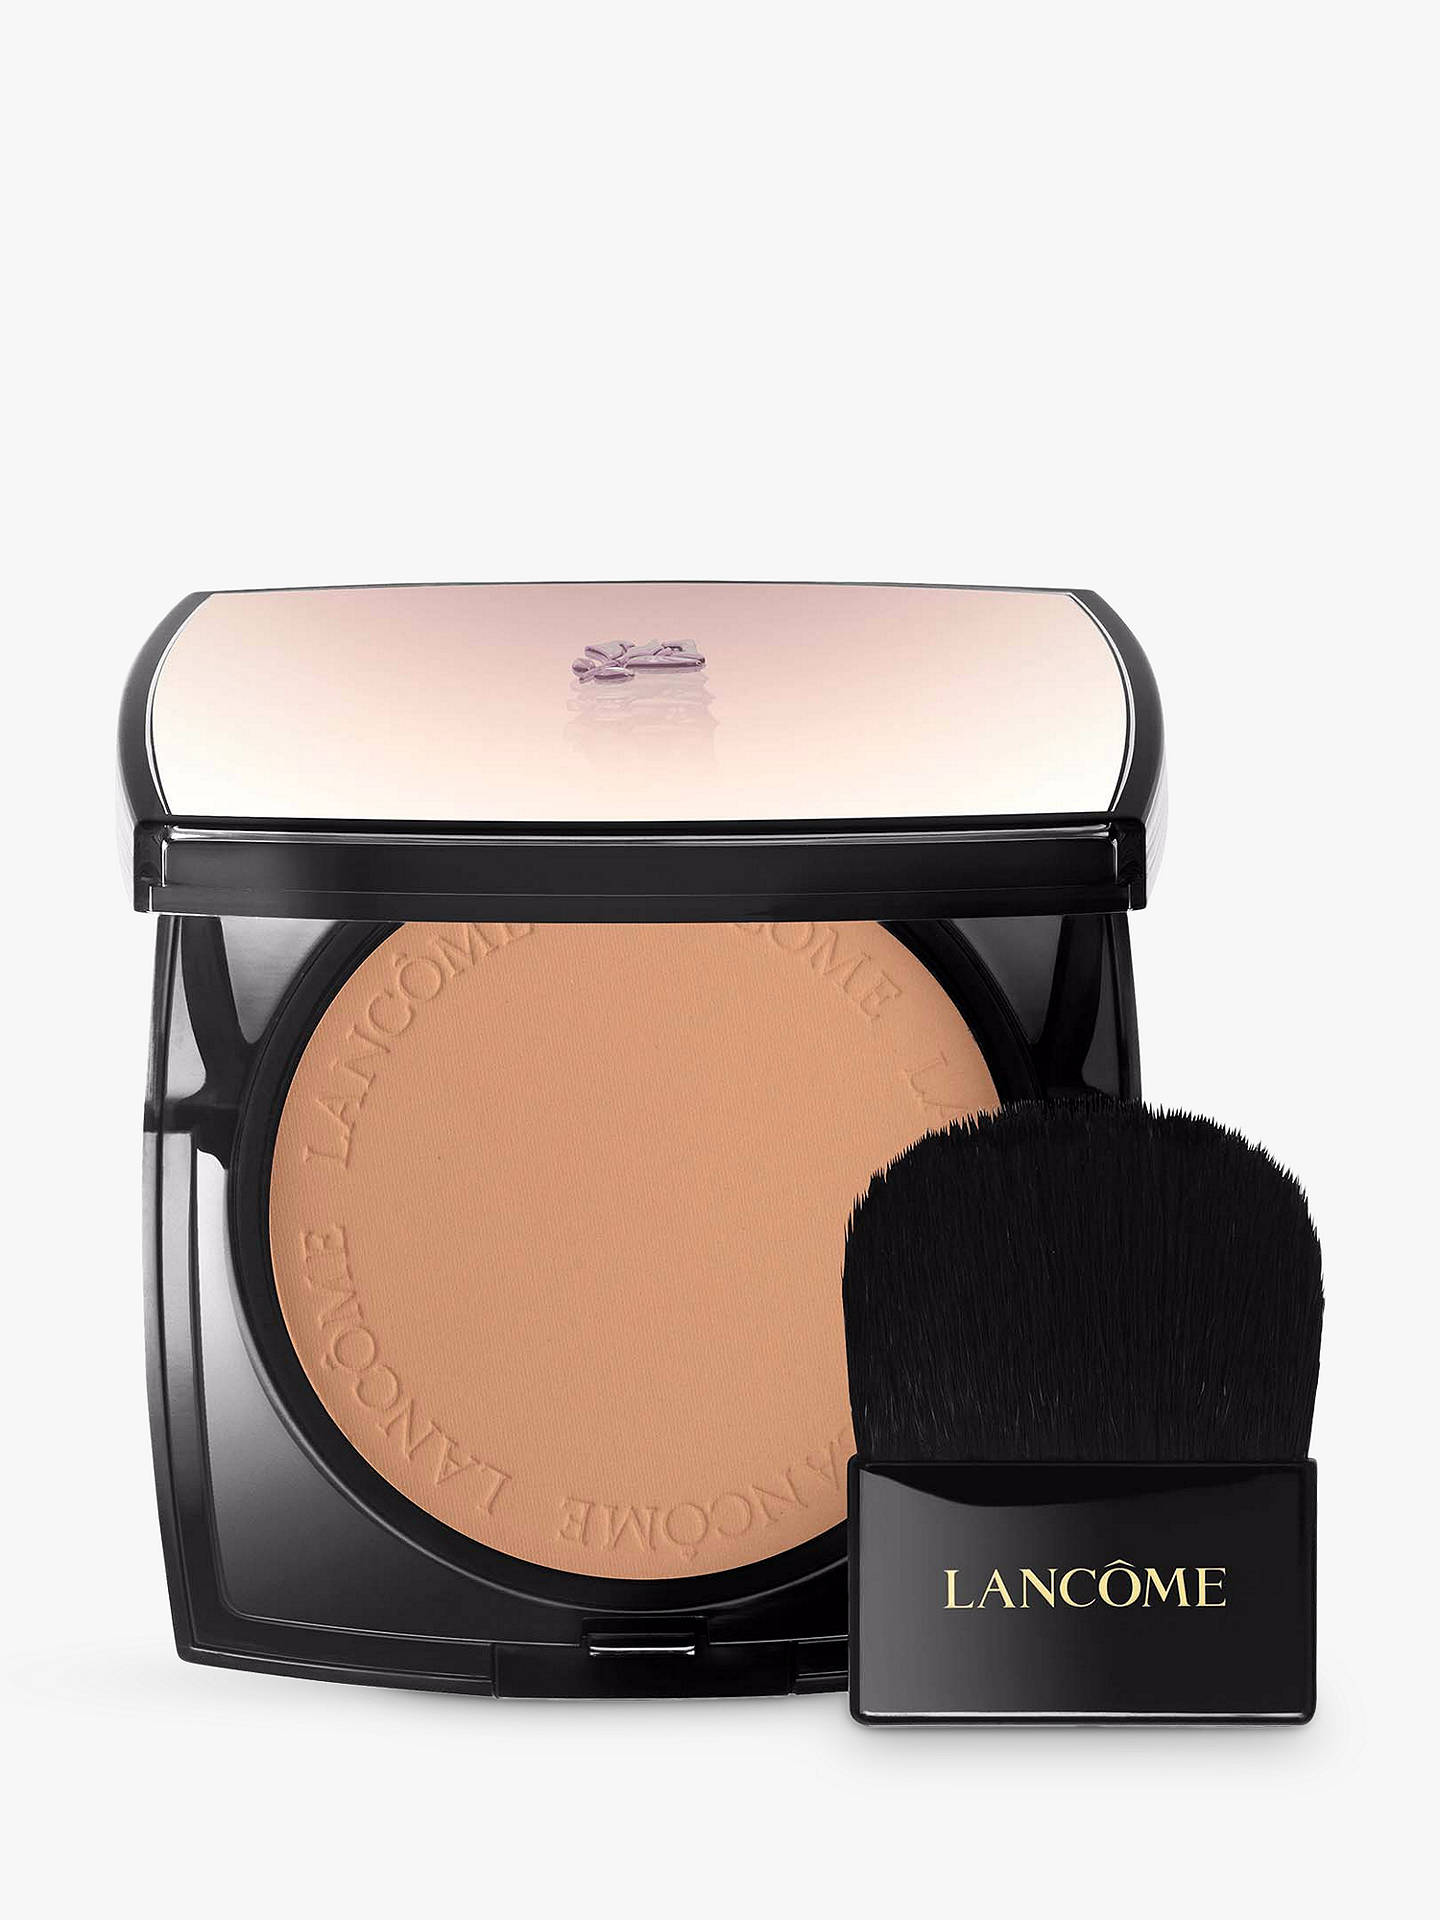 Buy Lancôme Belle De Teint Healthy Glow Blurring Powder Blusher, 04 Belle de Miel Online at johnlewis.com